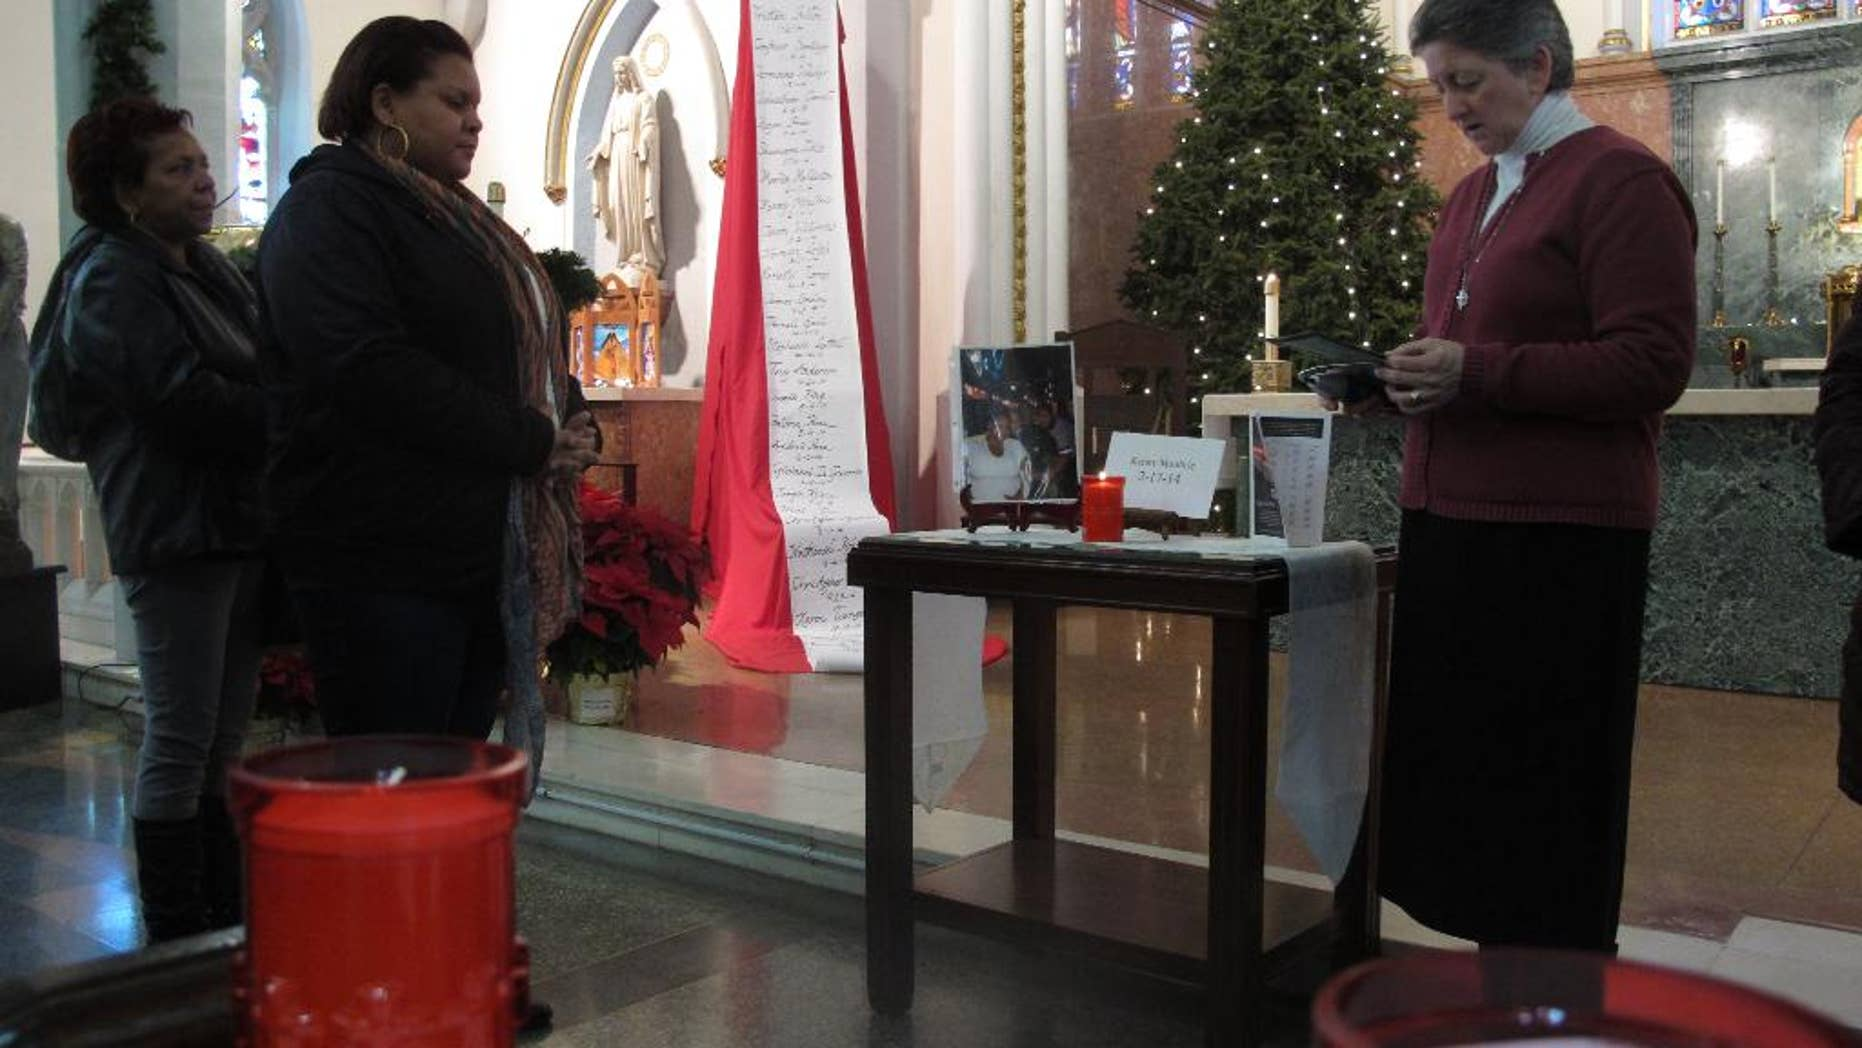 In this Tuesday, Dec. 30, 2014 photo, Carmen Marquez watches as Sister Helen Cole leads a vigil for the 32 murder victims in 2014, at Cathedral of the Immaculate Conception in Camden, N.J. Marquez's husband, Kenny Moultrie, was among the victims who were being remembered. (AP Photo/Geoff Mulvihill)